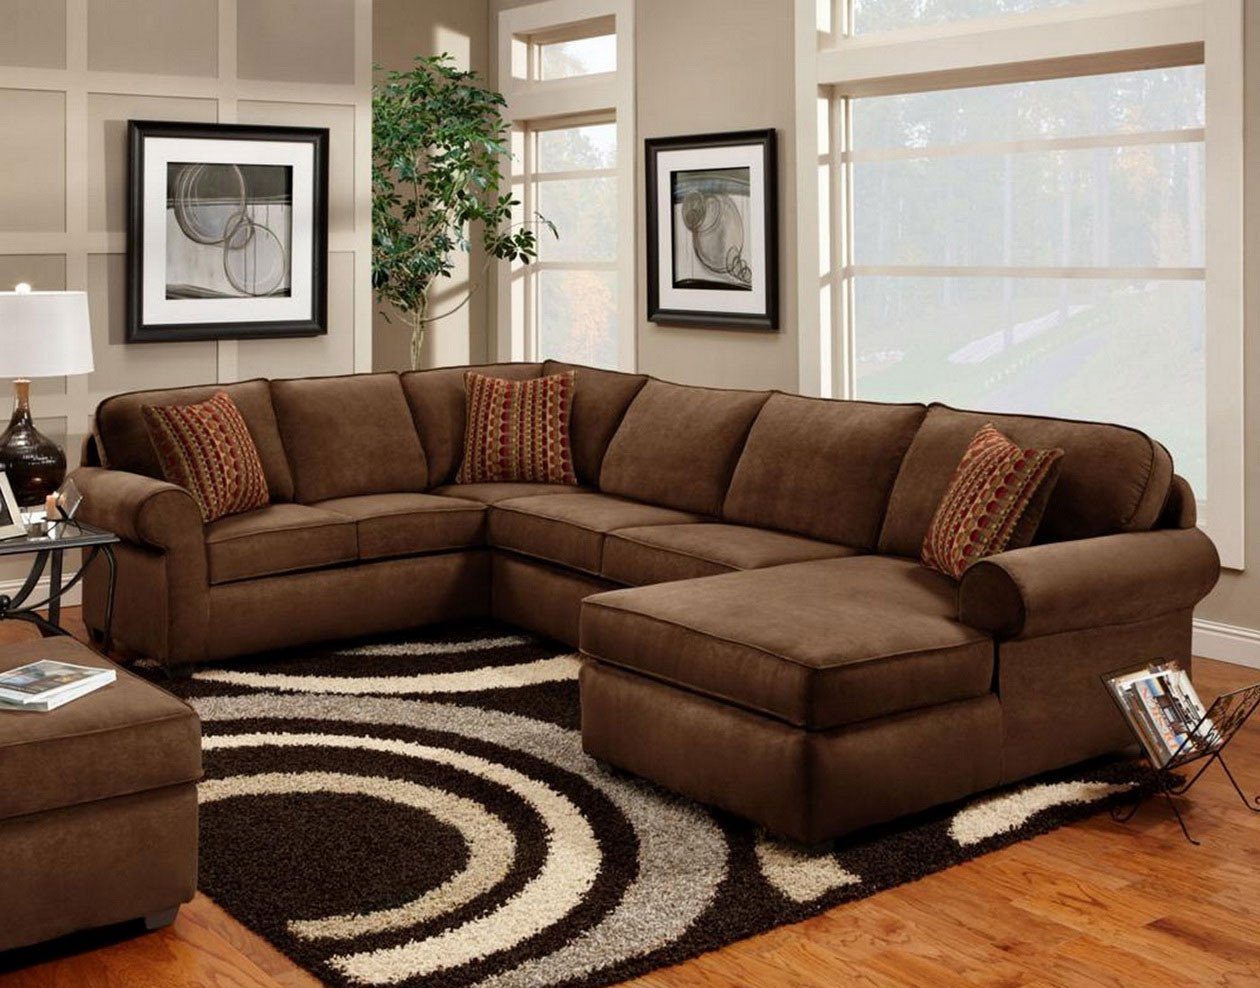 Comfortable Living Roomcouch Fresh Tips to Purchase the Best fortable Couches Decorating Ideas